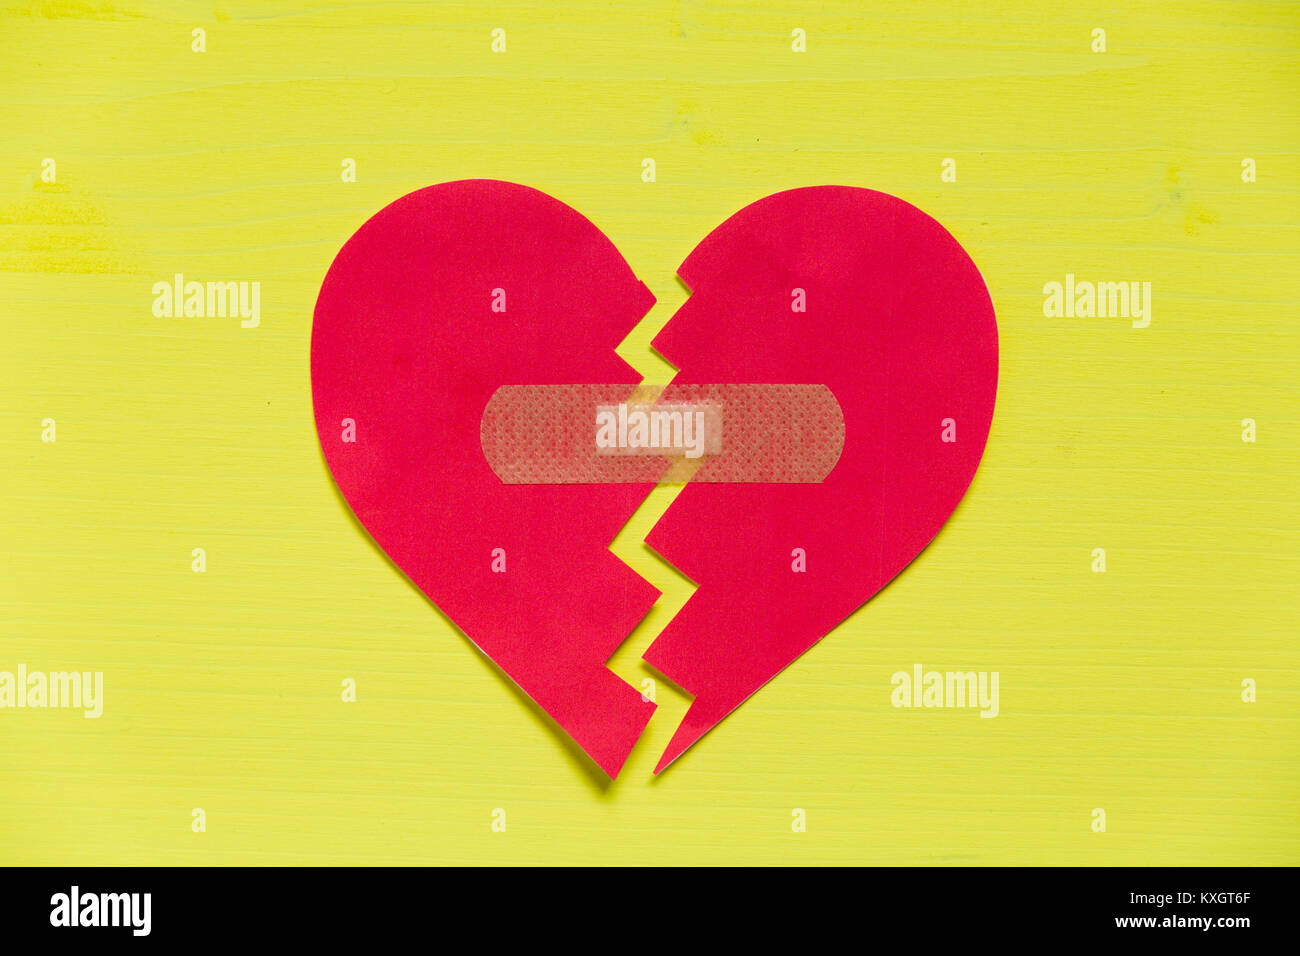 The Broken Heart Essay Research Paper Imagery